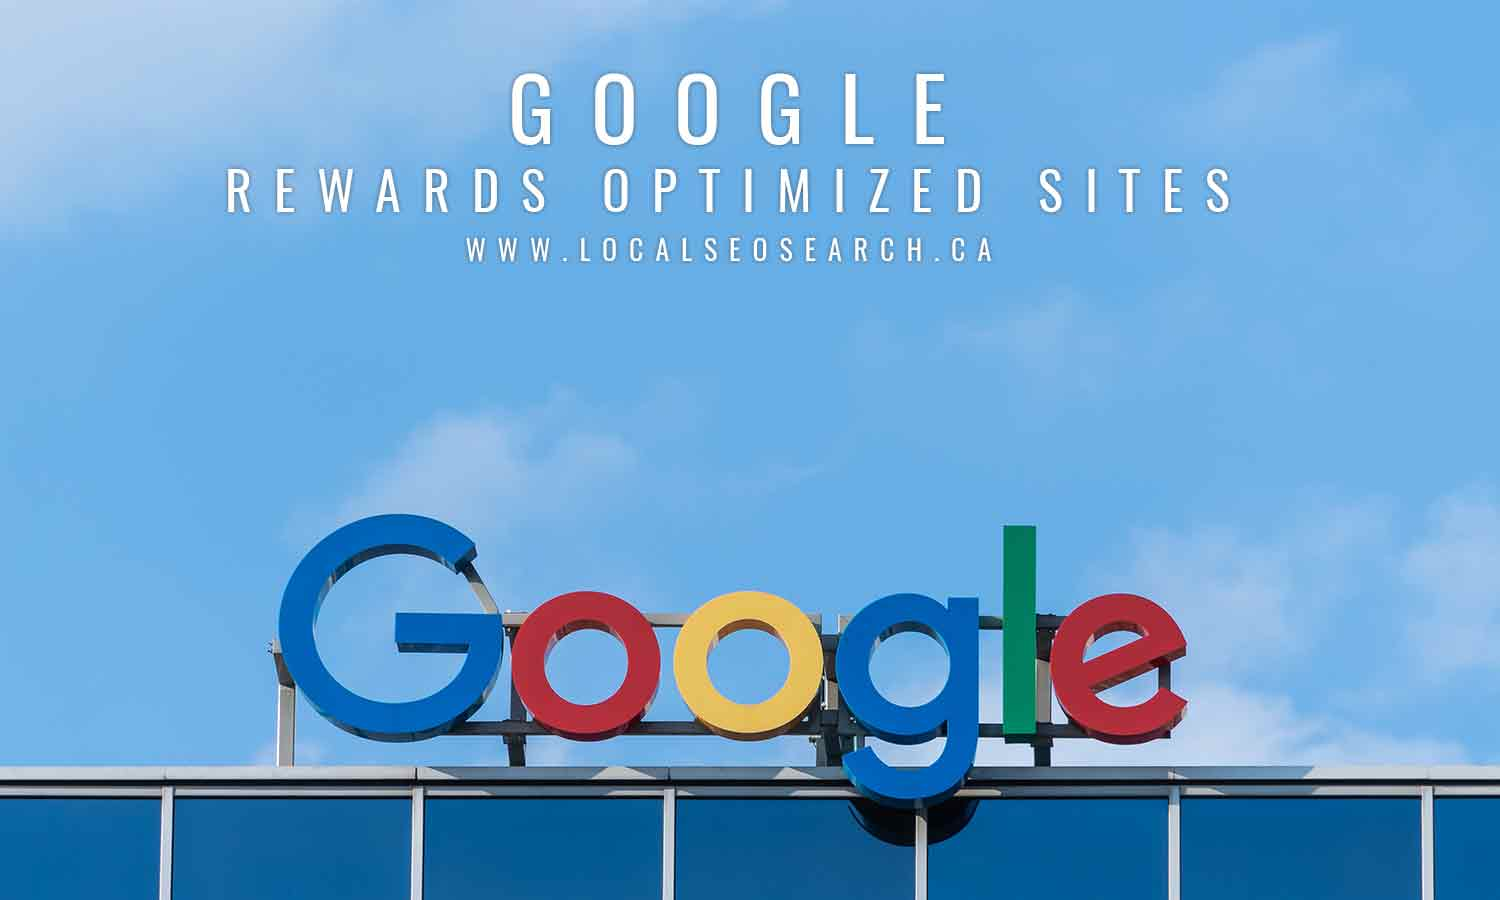 Google-rewards-optimized-sites